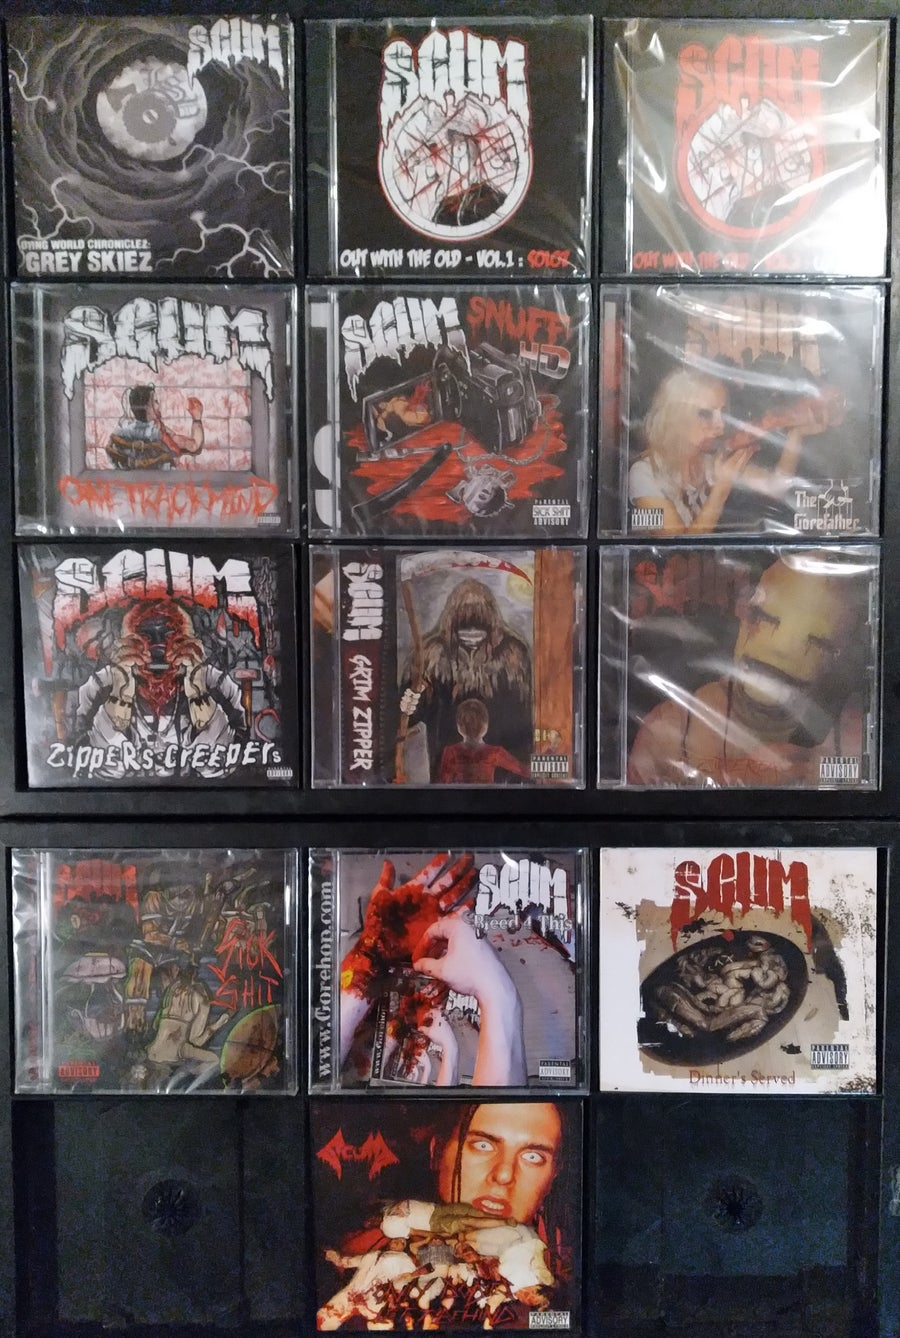 Image of NEW! SCUM 13 CD PACK including GREY SKIEZ!!!